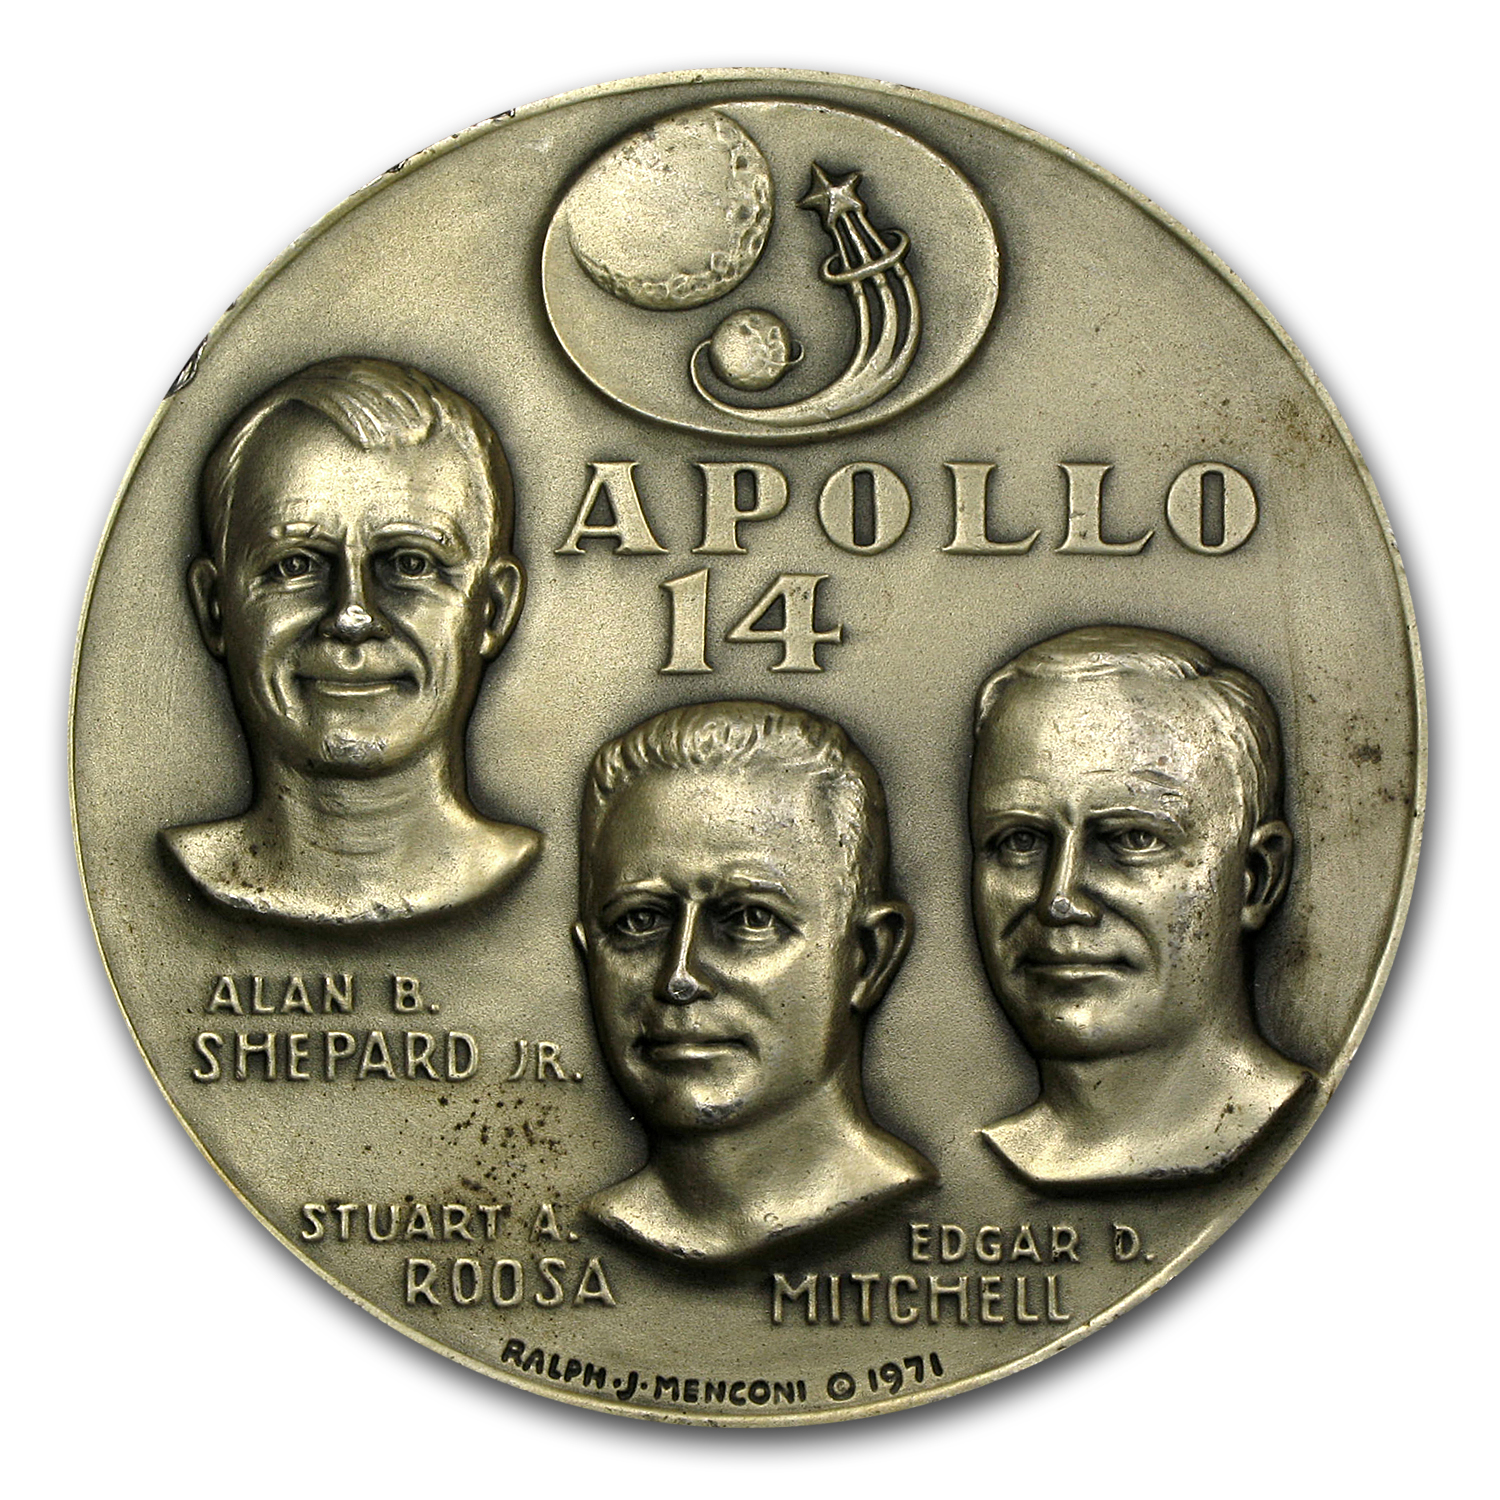 4.74 oz Silver Rounds - APOLLO 14